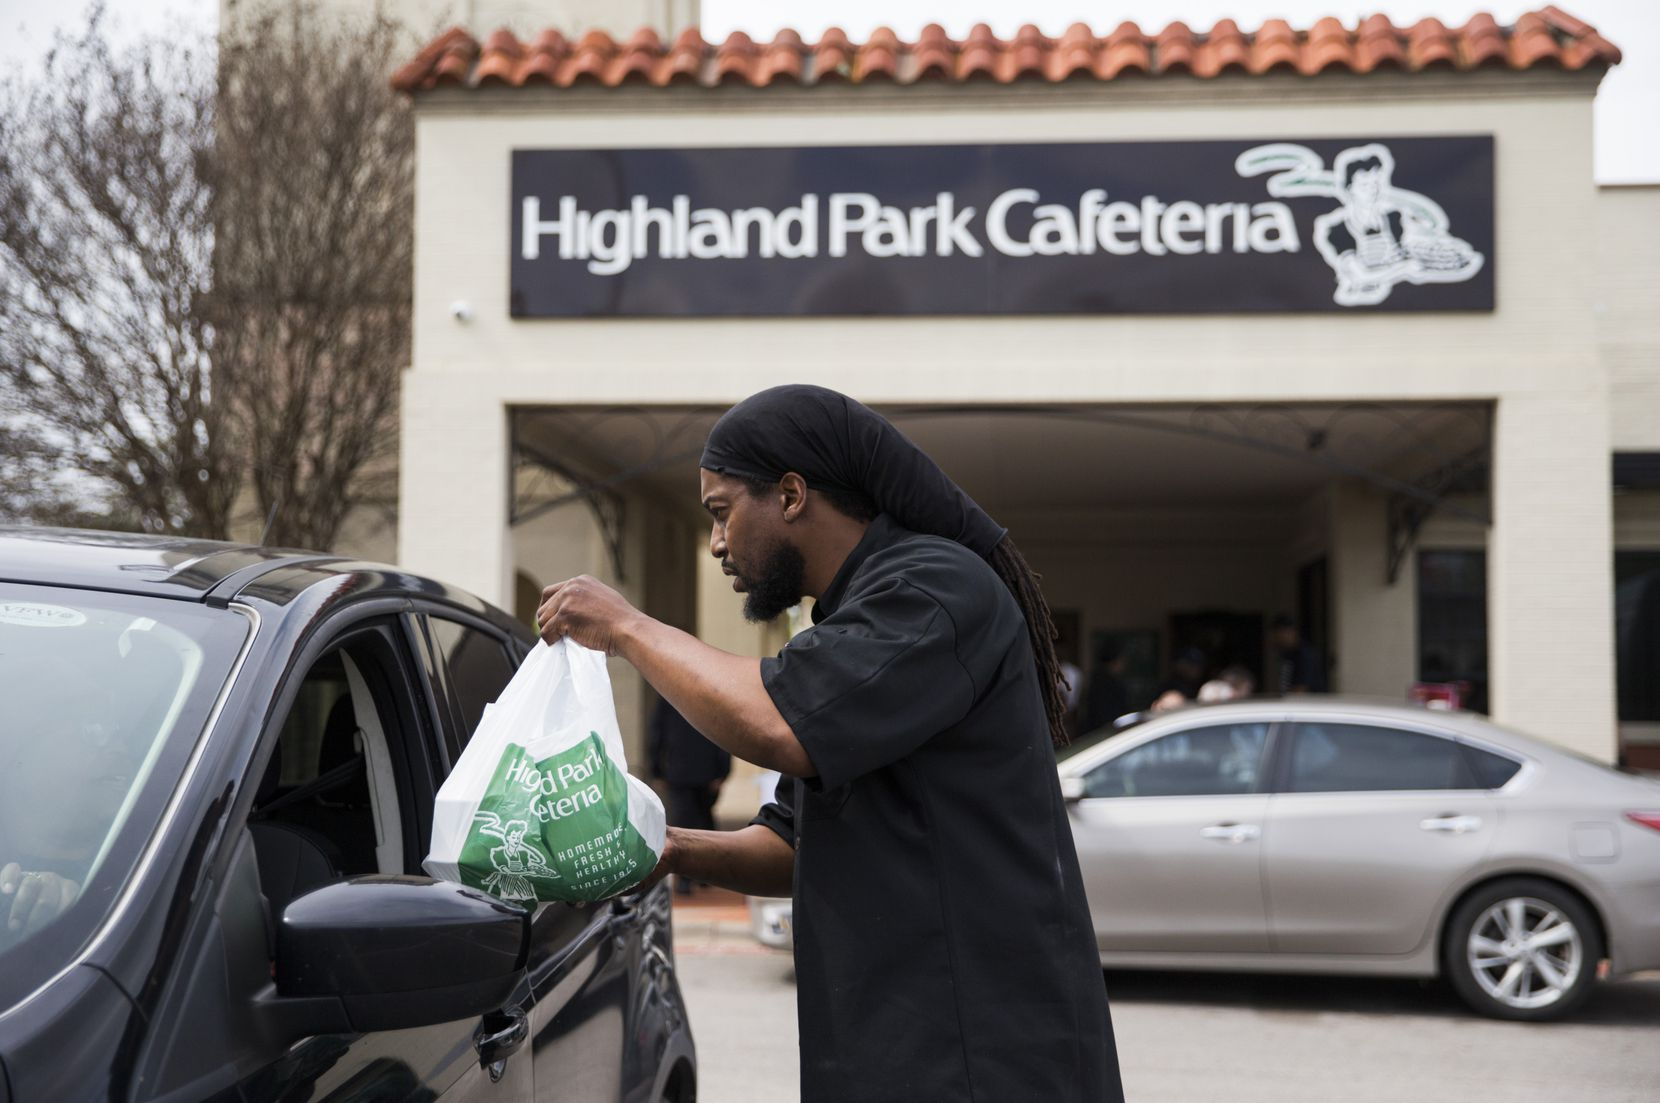 Executive chef Johnny Howard delivered a meal to a driver outside Highland Park Cafeteria last week. Employees handed out free meals outside the cafeteria after Dallas eatery and bar dining areas were closed to help slow the spread of COVID-19